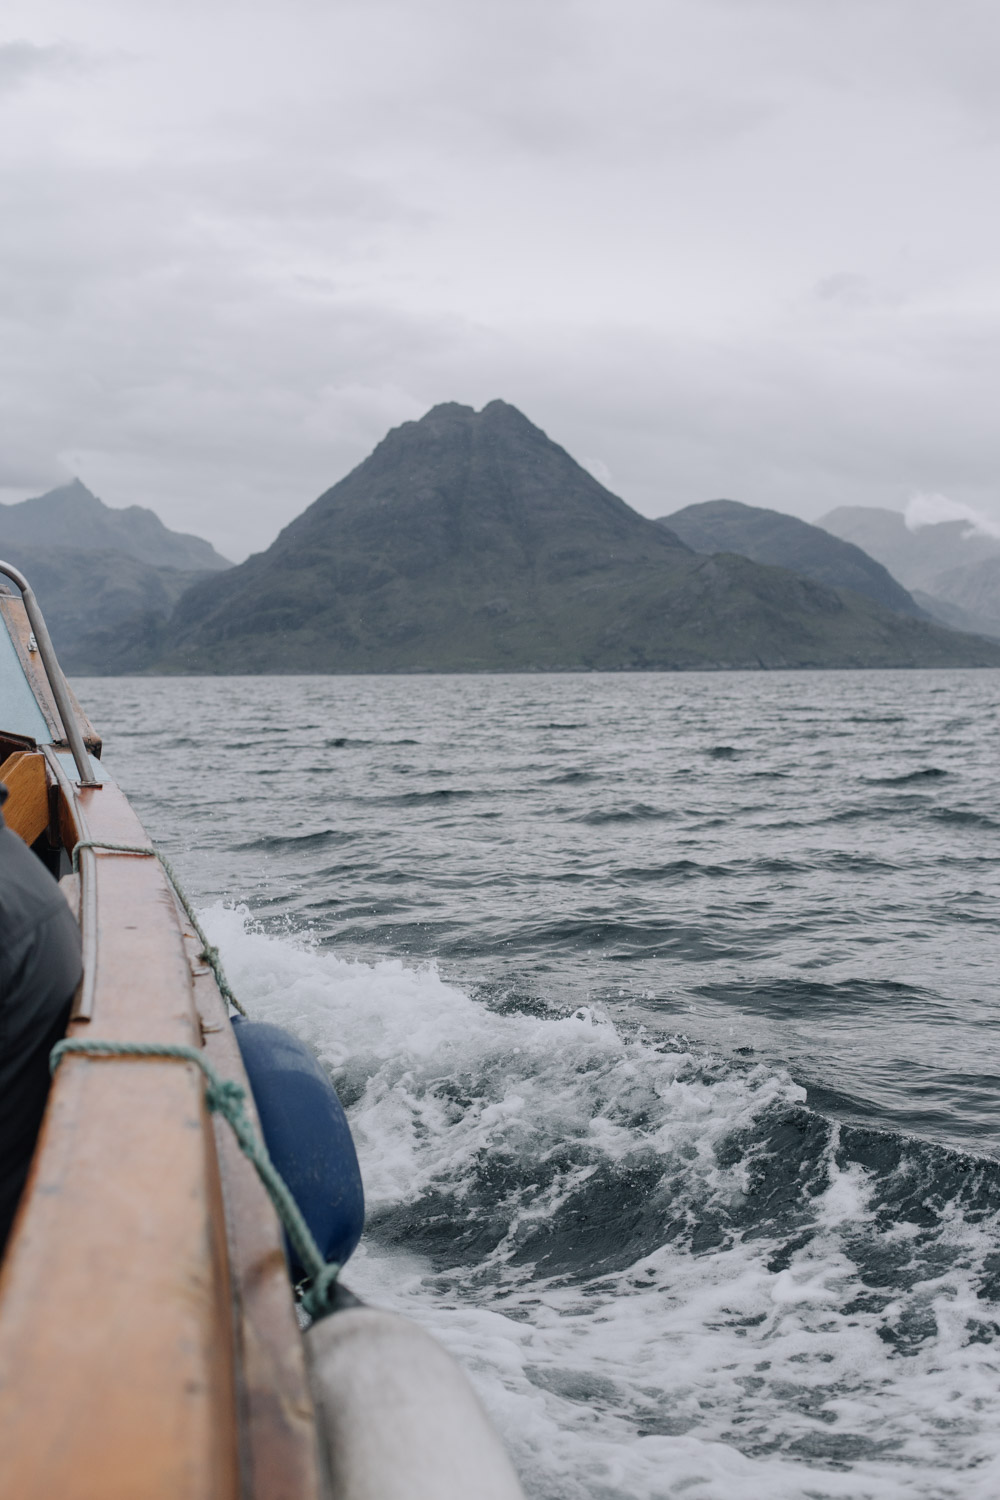 Misty Isle Boat Trip - Isle of Skye Scotland